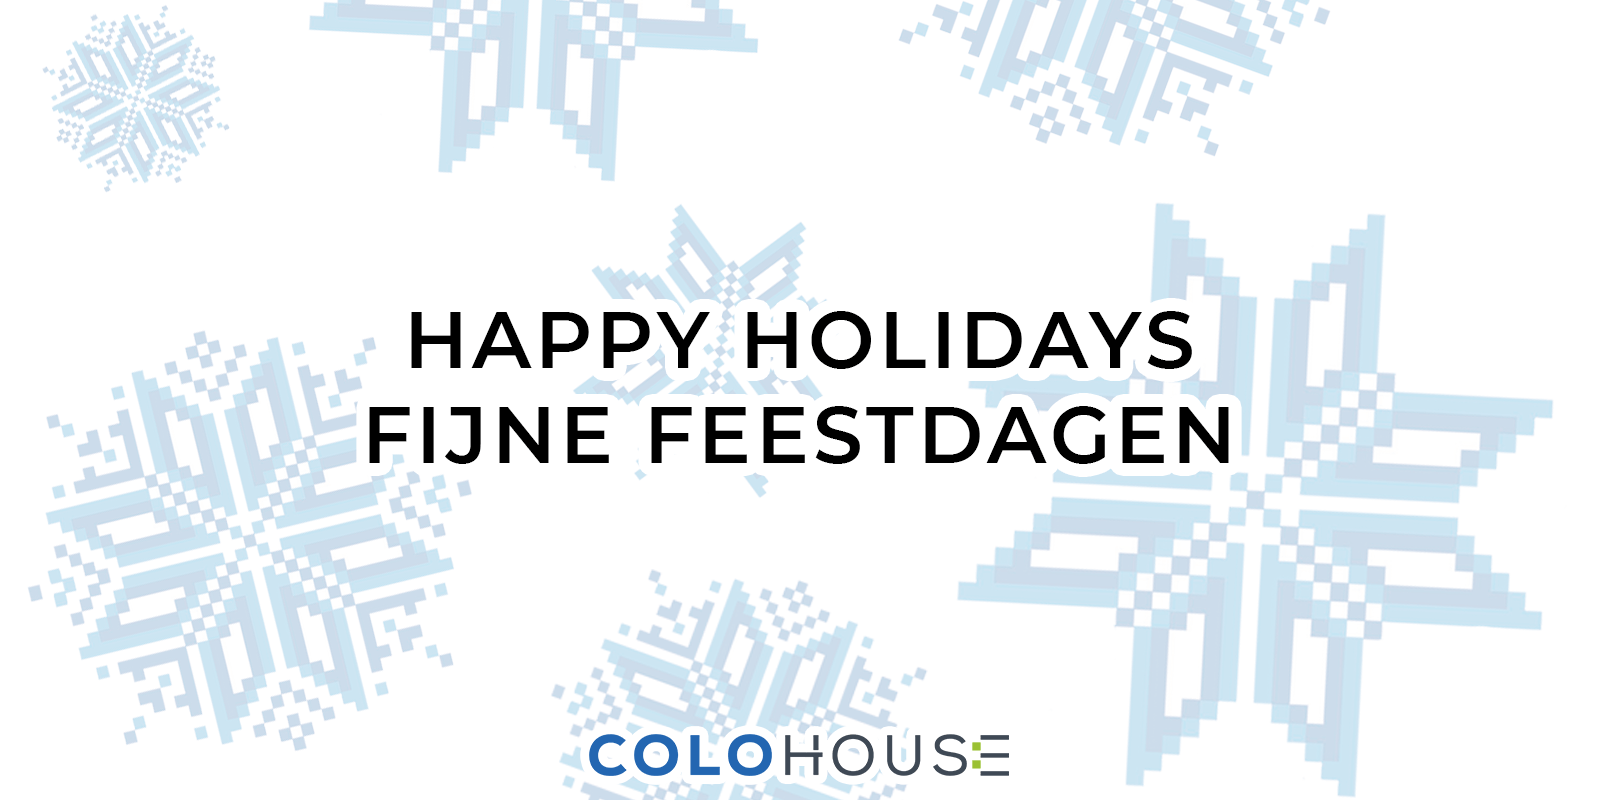 text in english and dutch on top of a snowflake pattern: happy holidays, fijne feestdagen